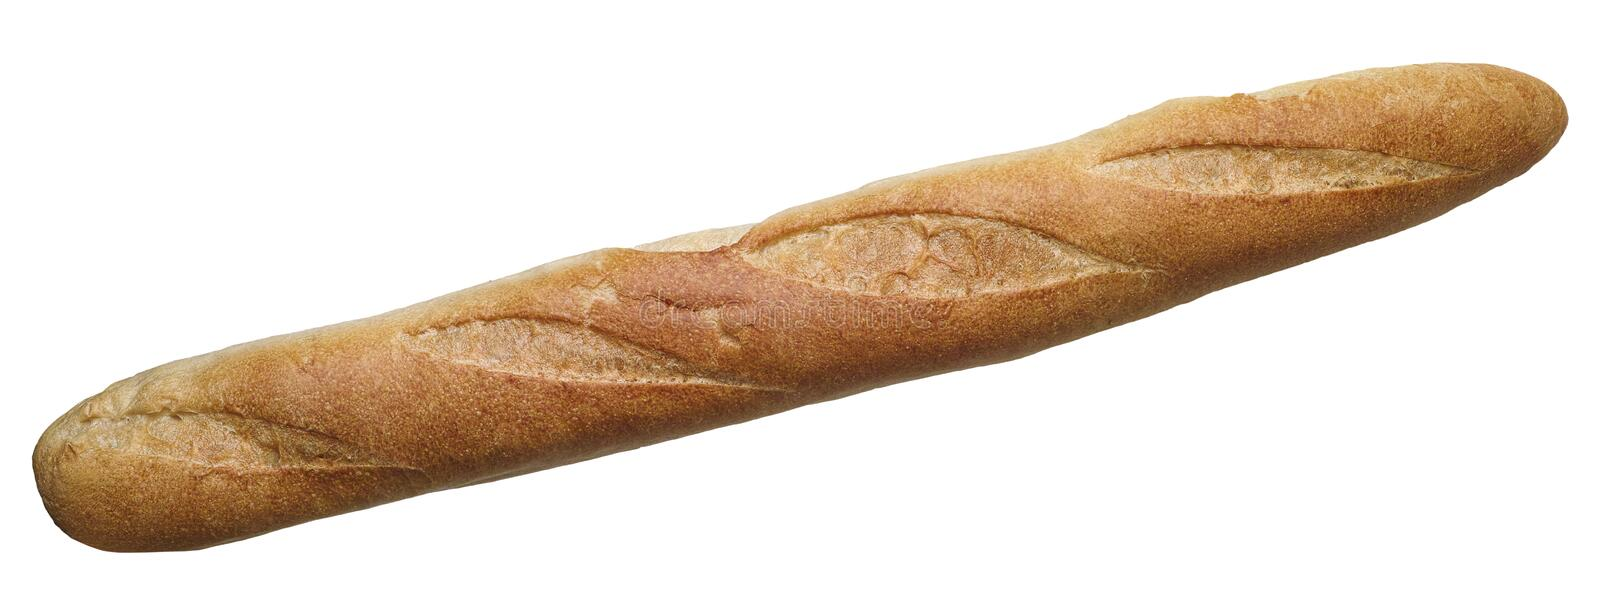 Baguette. Isolate on white background royalty free stock photography